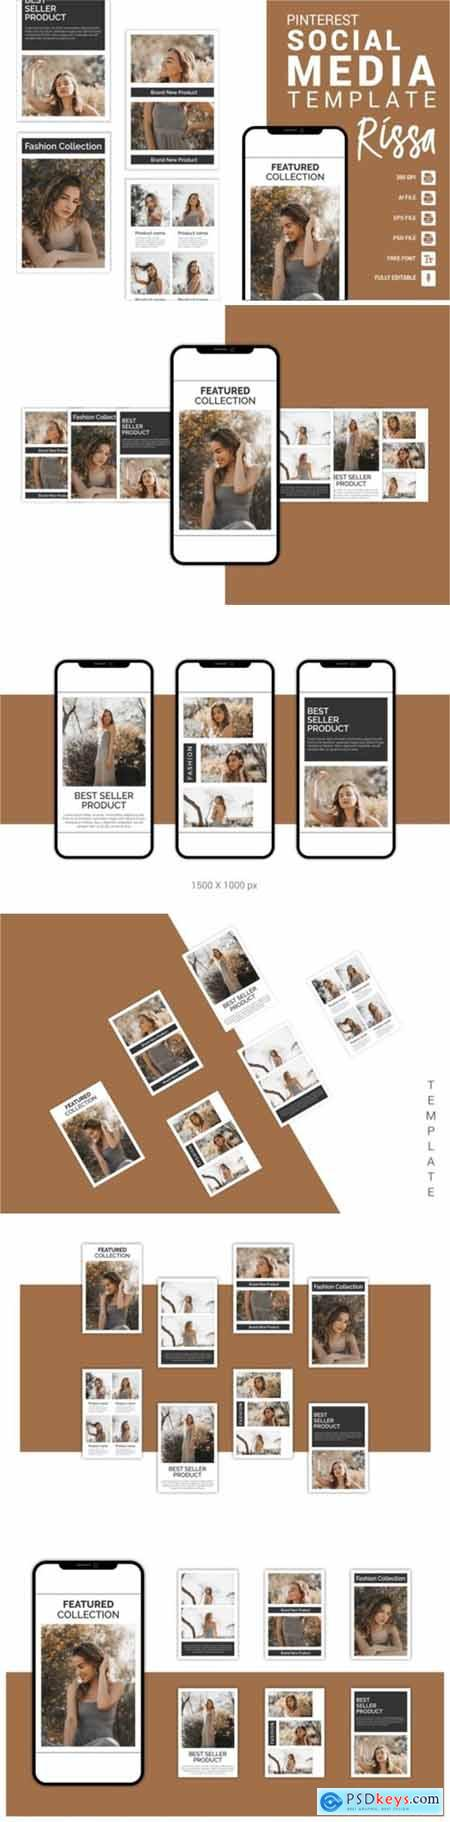 Rissa - Fashion Pinterest Templates 3656097